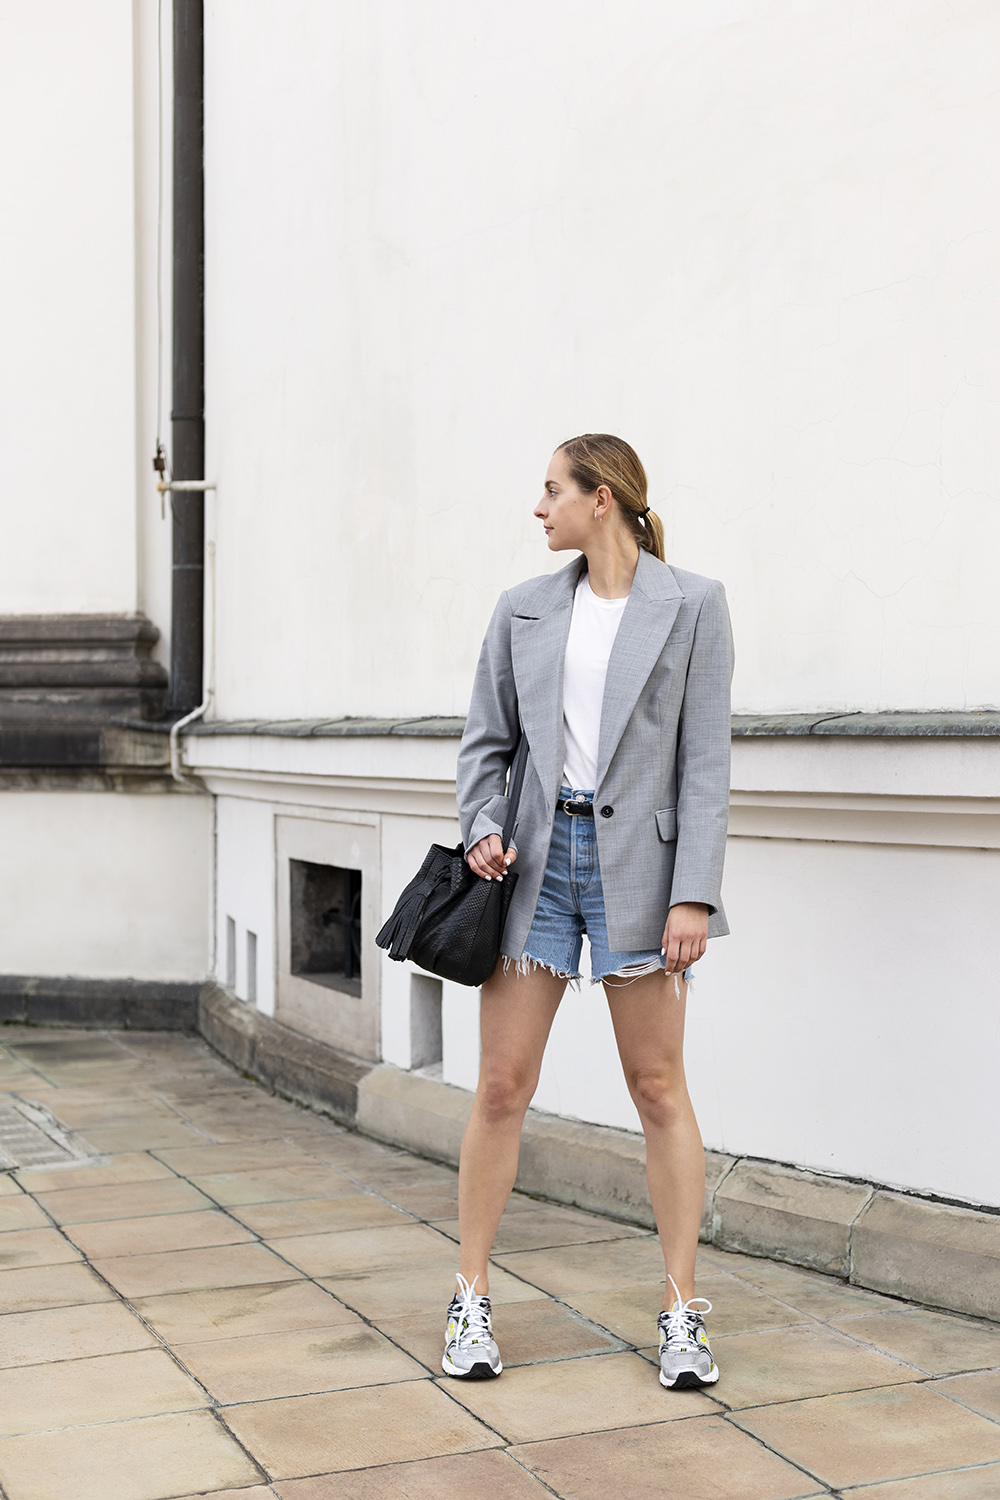 Blazer and sneakers. Athleisure outfit